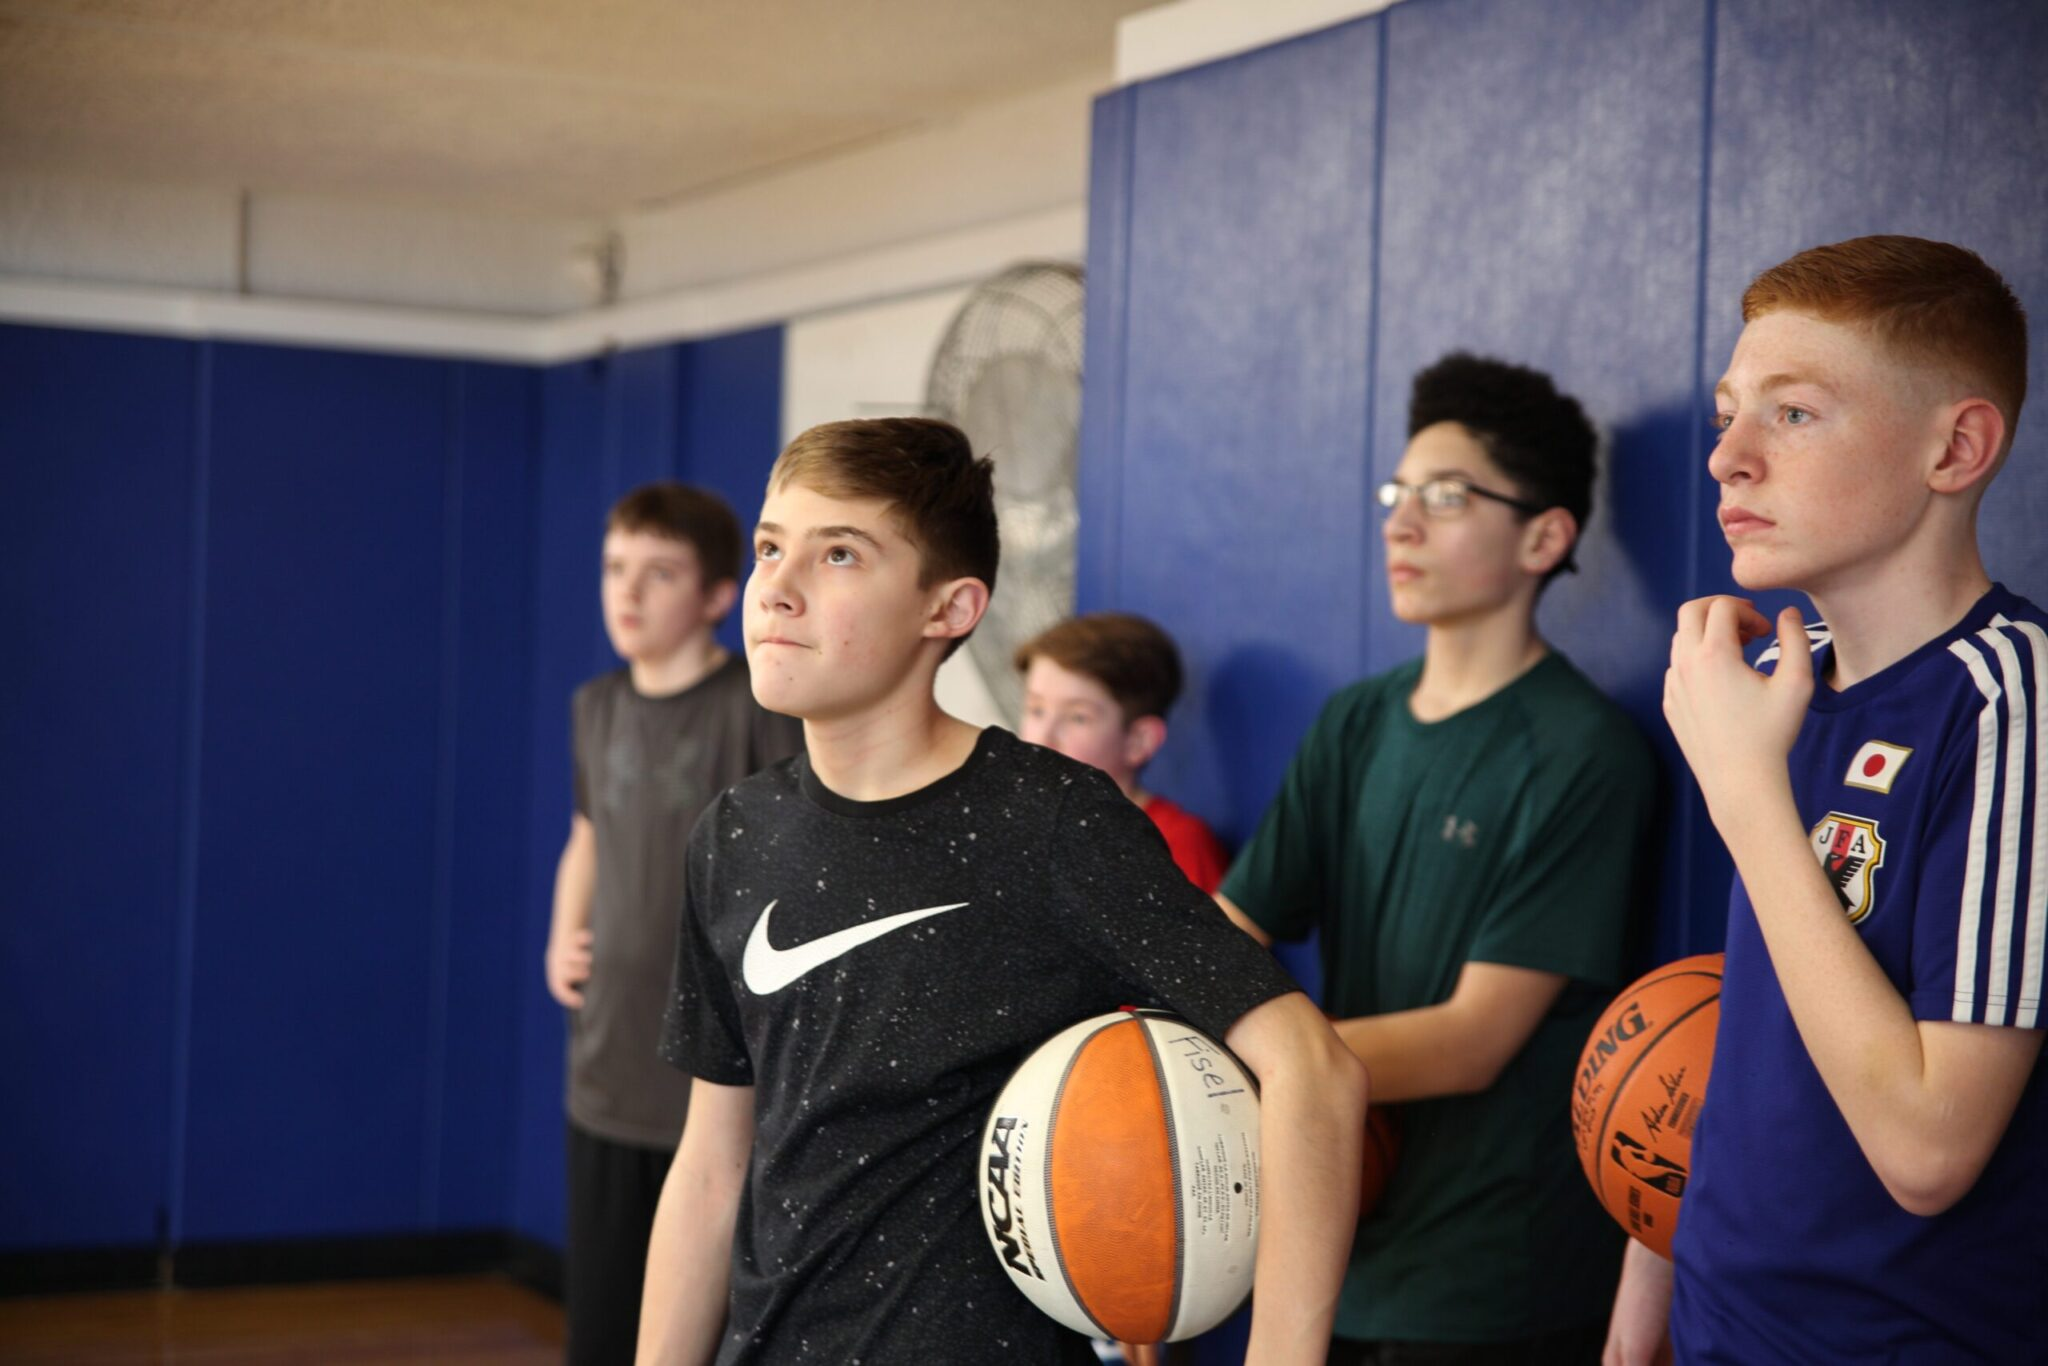 basketball training in chicago, chicago basketball training, learn basketball fundamentals in chicago